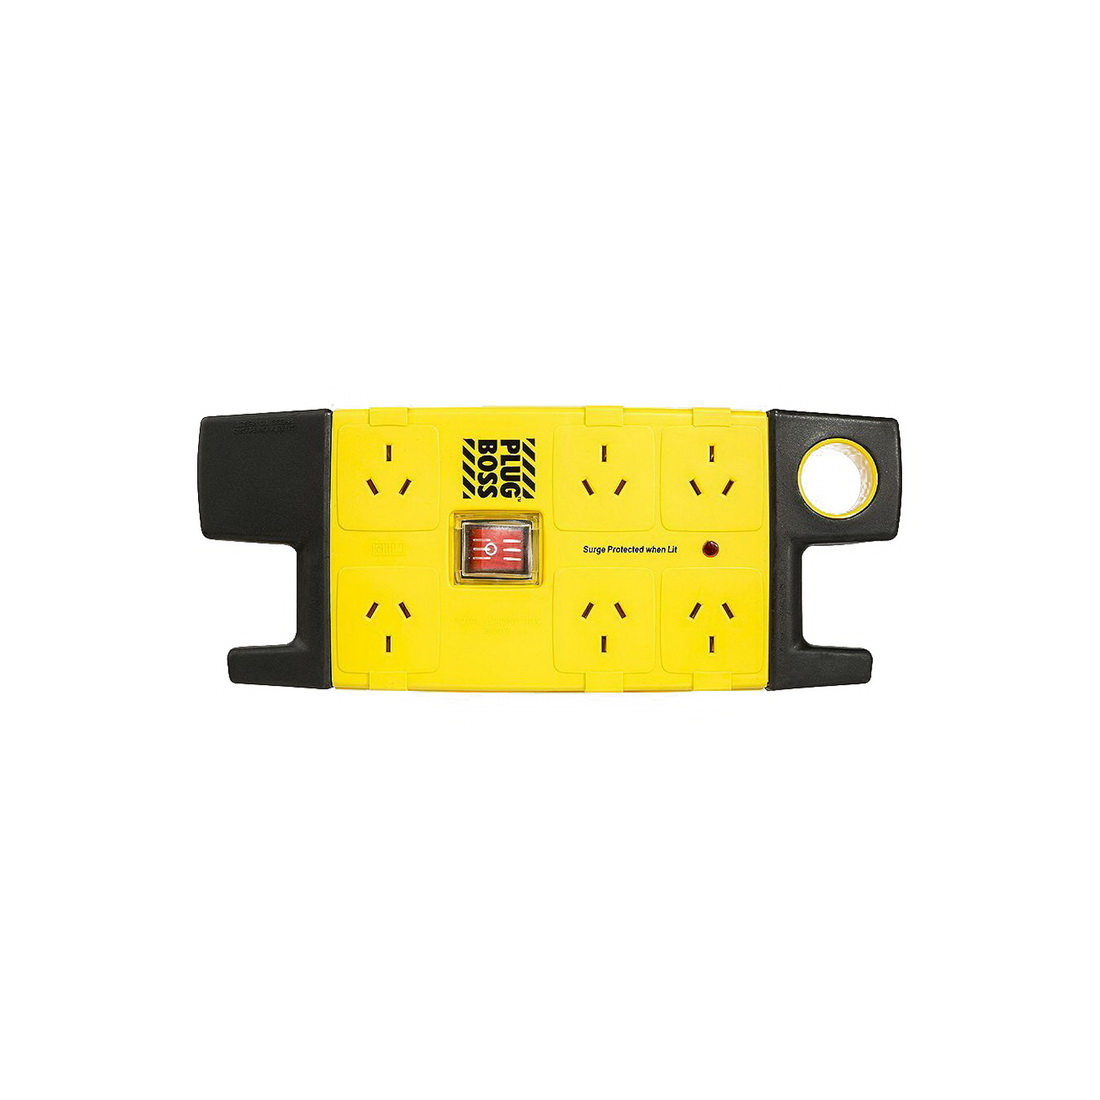 6-Outlet 3m Surge Protected Plug Boss Power Board